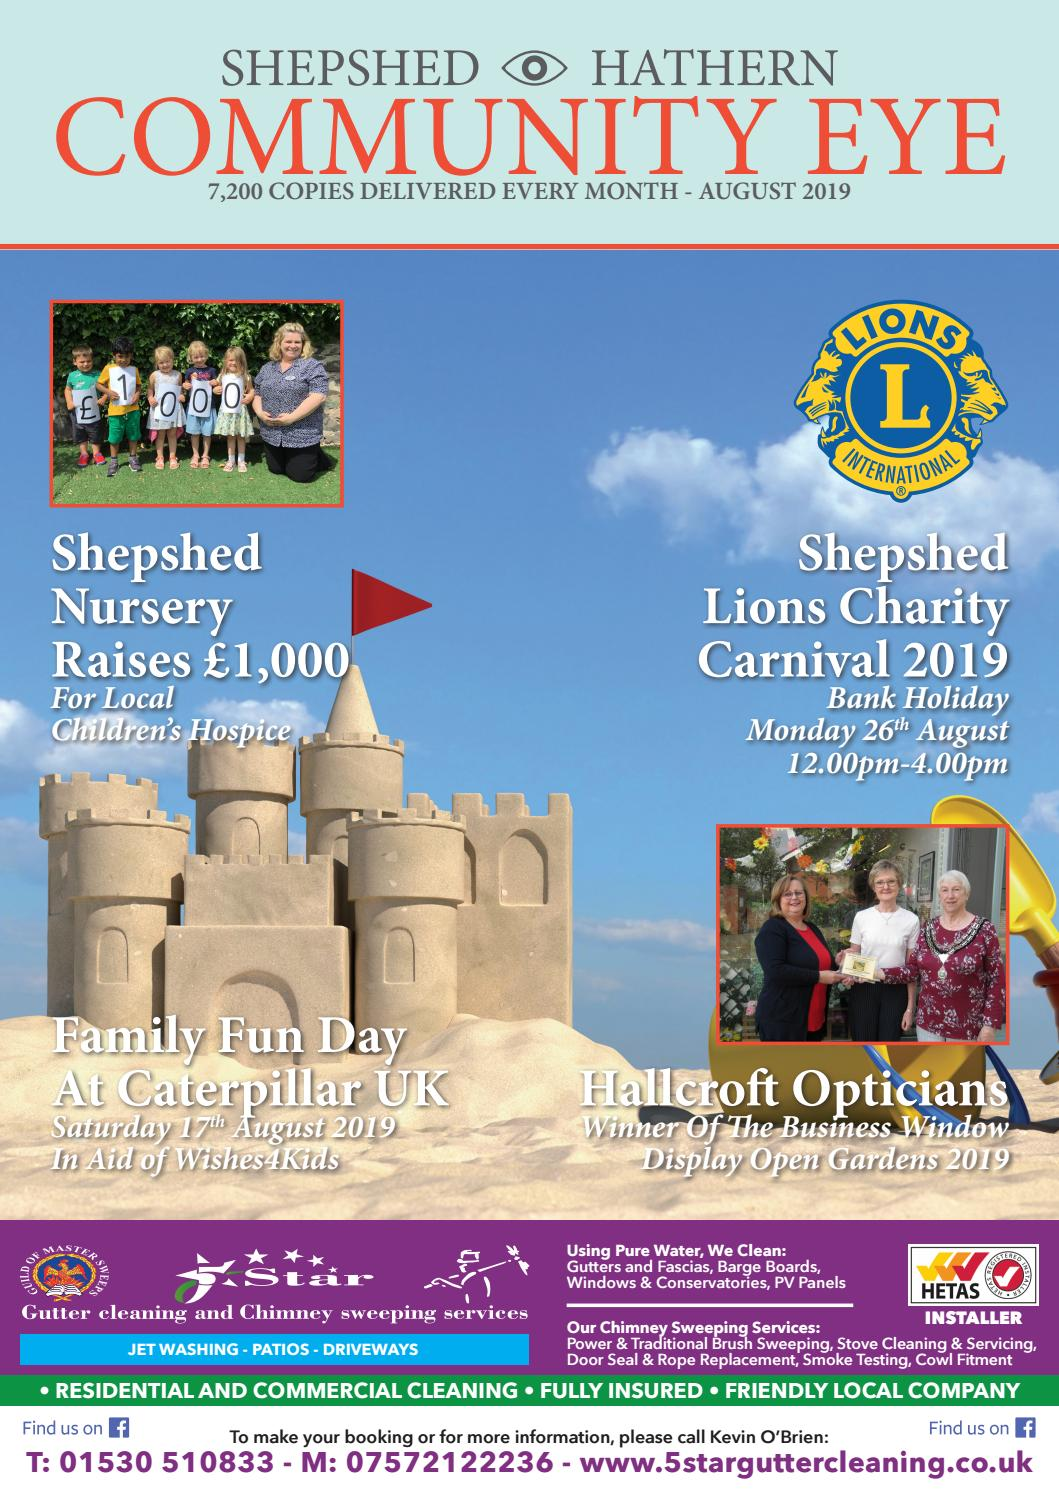 August 2019 - Shepshed & Hathern Community Eye by OpenBox